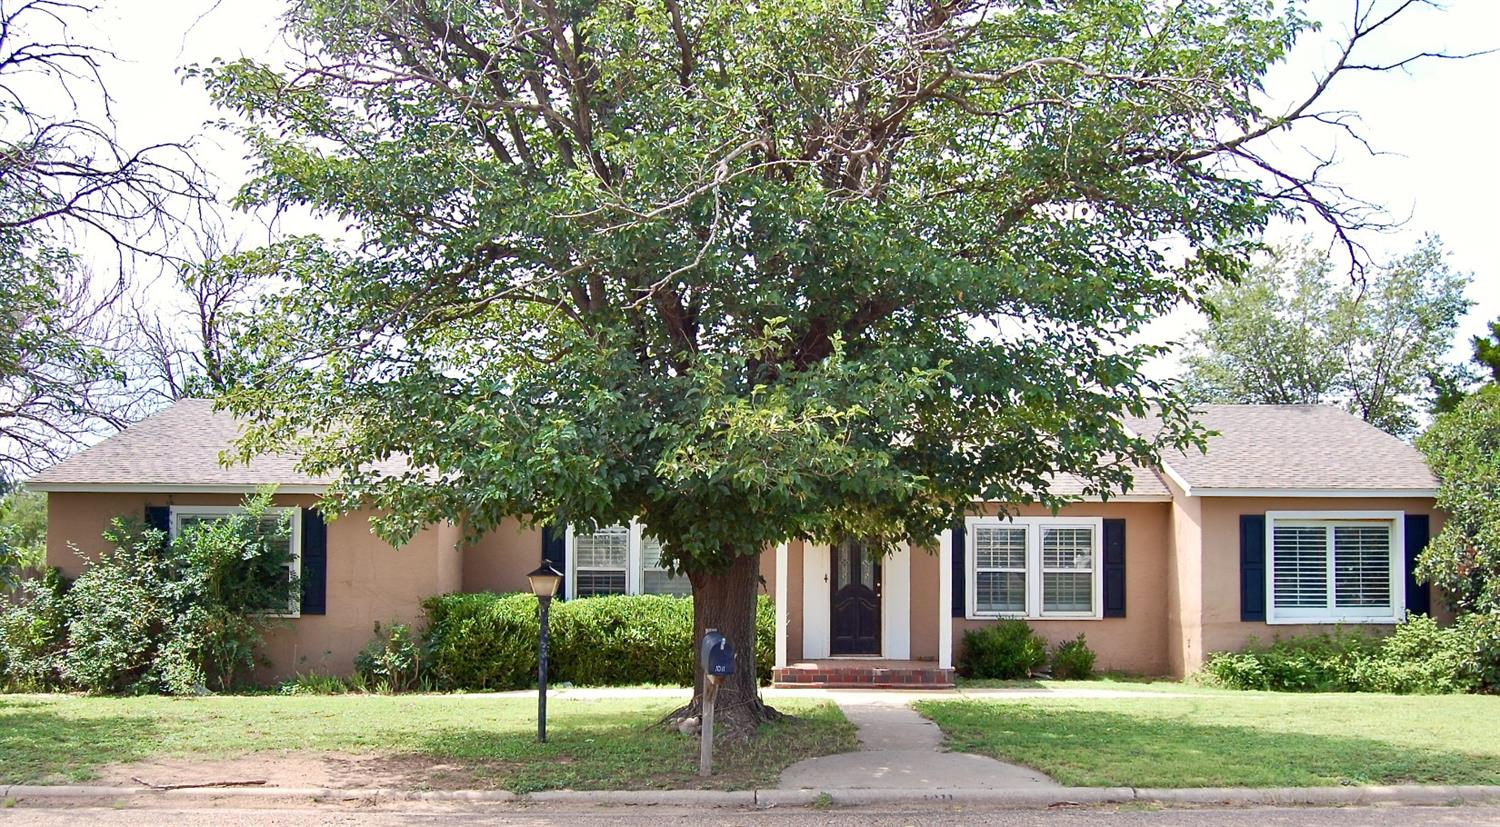 4-Bedroom House In Shallowater